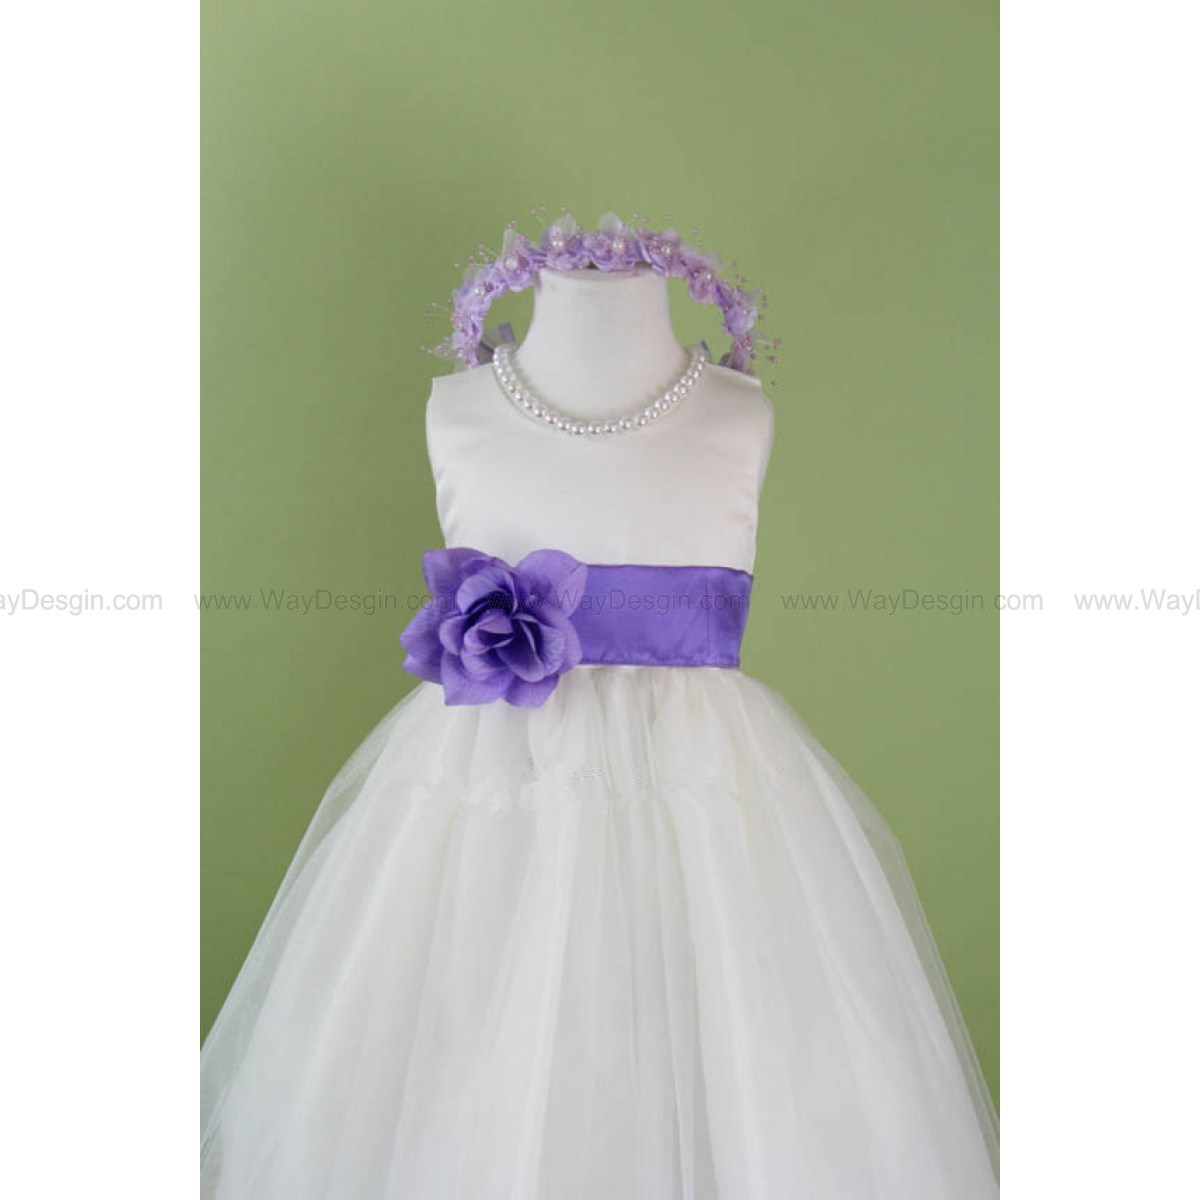 Flower Girl Dress - WHITE Tulle Dress with LILAC Sash - Communion, Easter, Junior Bridesmaid, Wedding - From Baby to Teen